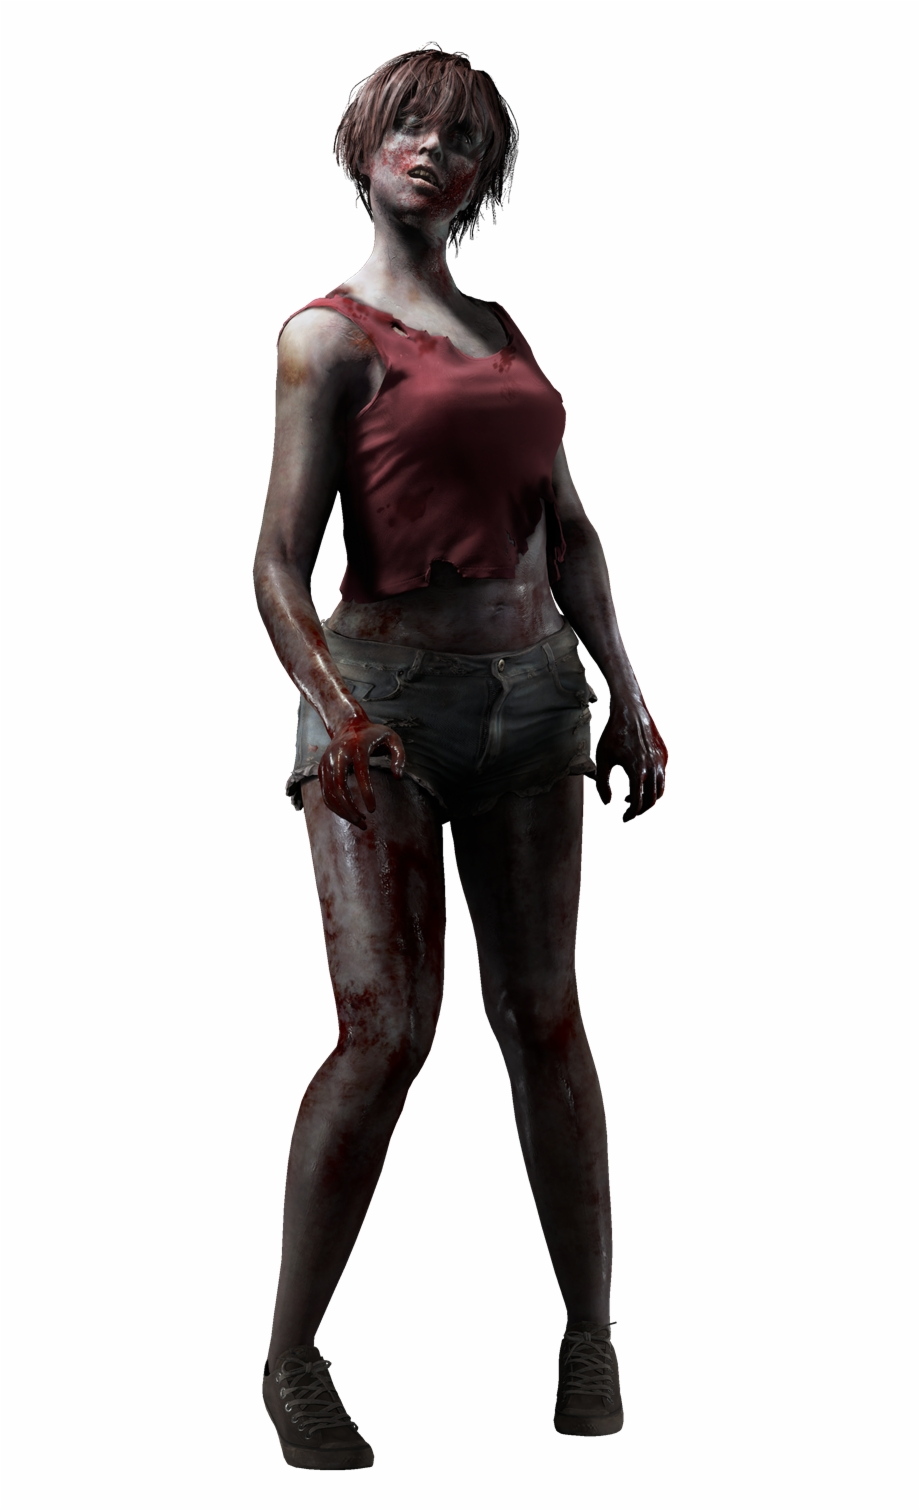 Resident evil 2 remake clipart image black and white download Resident Evil On Twitter - Resident Evil 2 Remake Female ... image black and white download